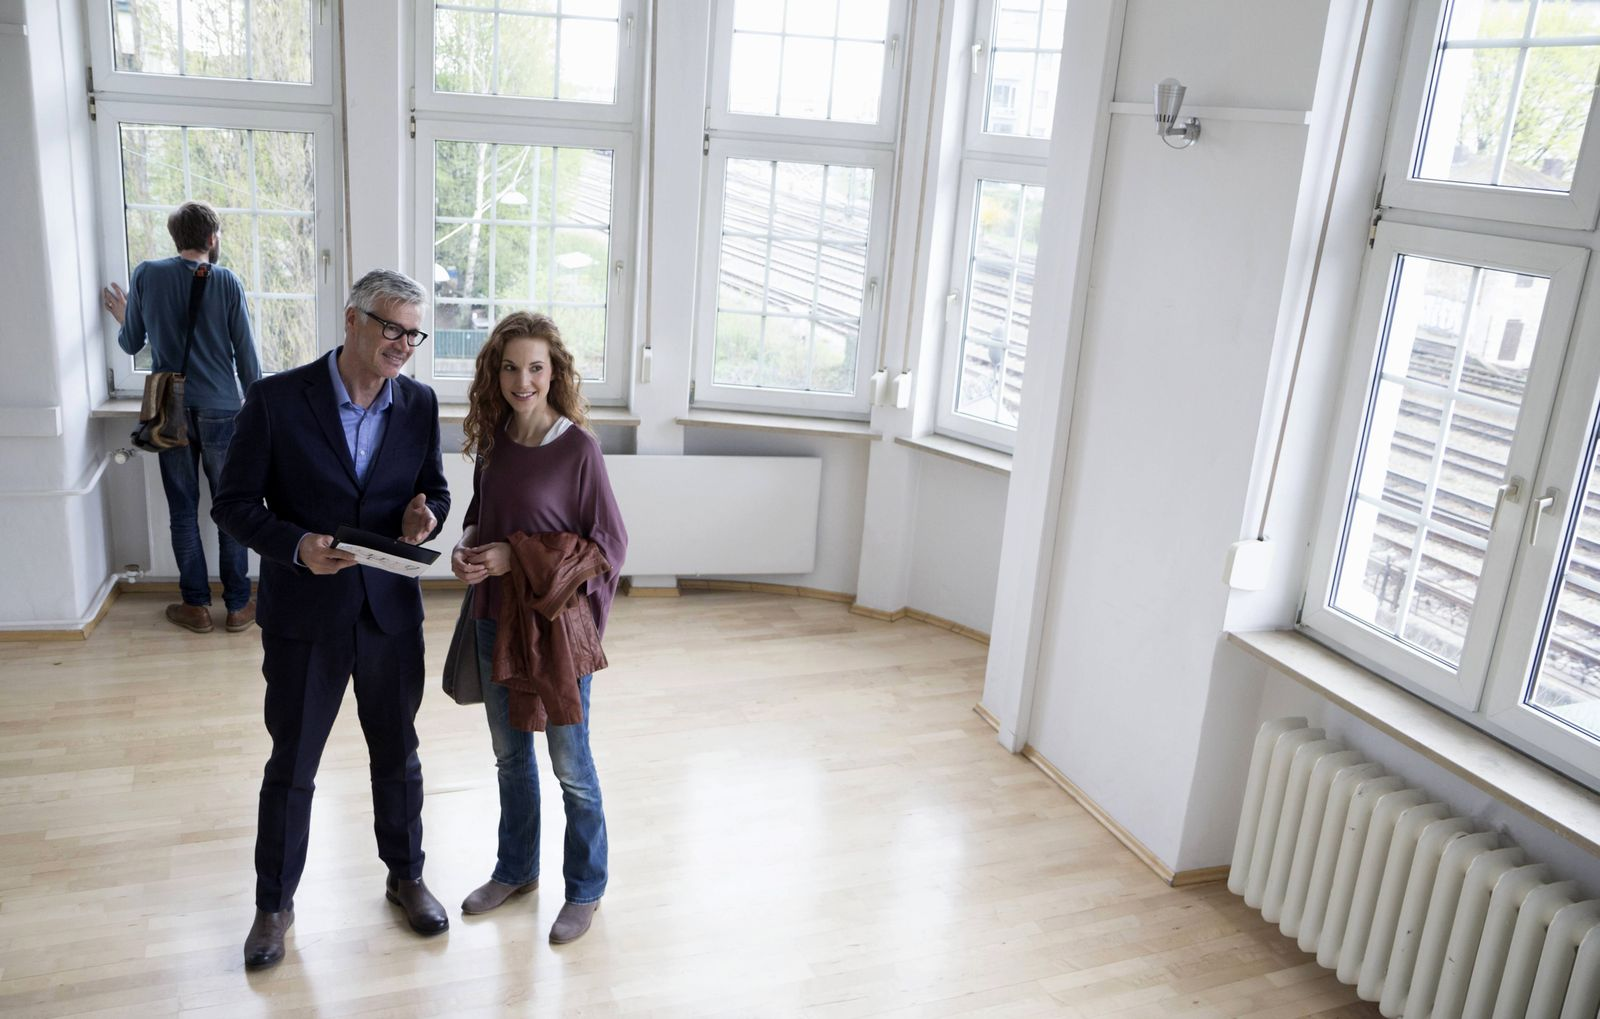 Real estate agent talking to client in empty apartment model released Symbolfoto property released P